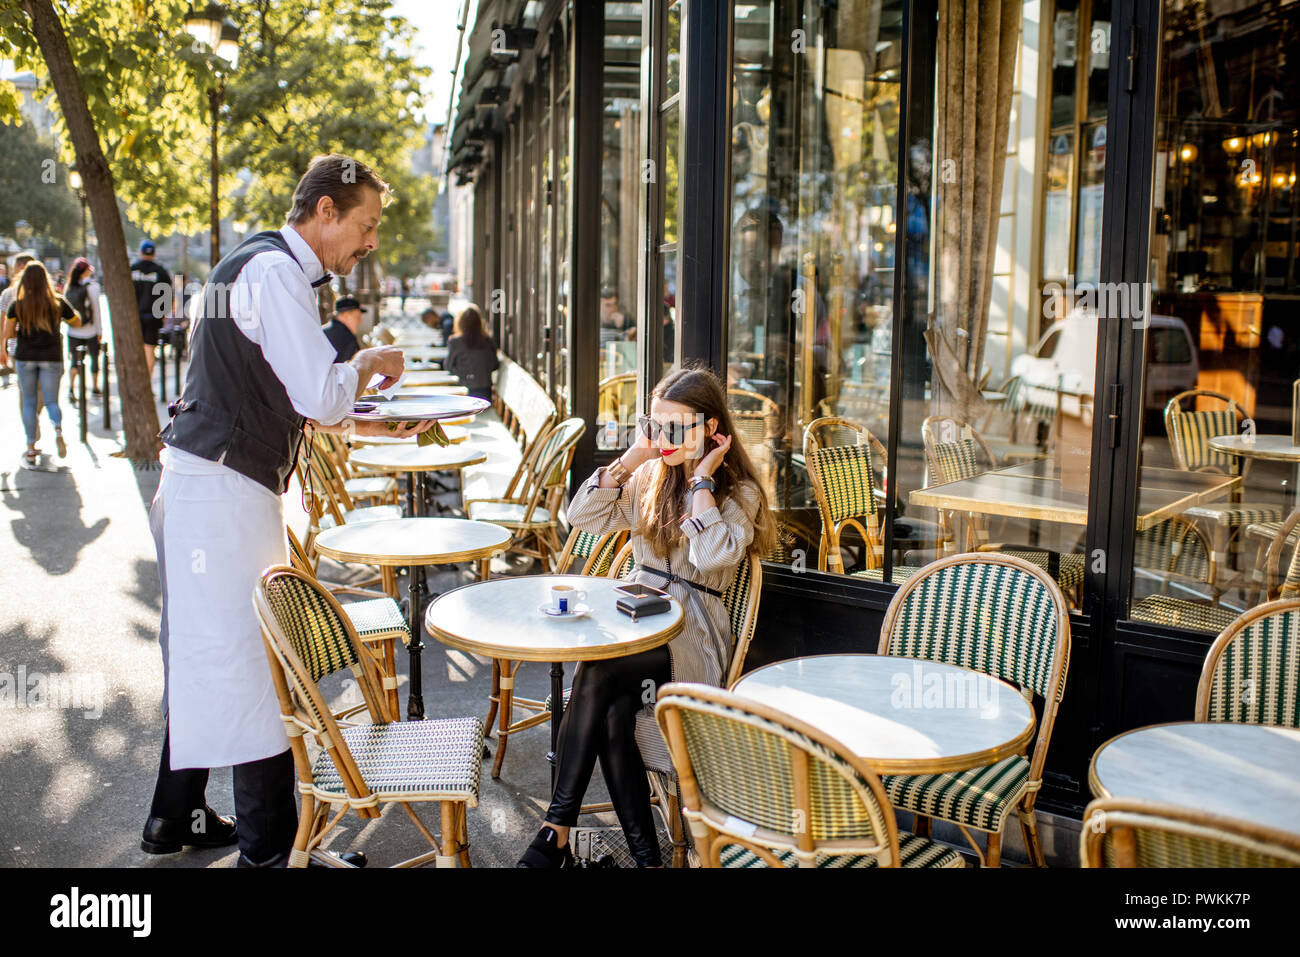 PARIS, FRANCE - August 31, 2018: Waiter serving coffee to a young woman client sitting at the traditional french cafe outdoors in Paris - Stock Image